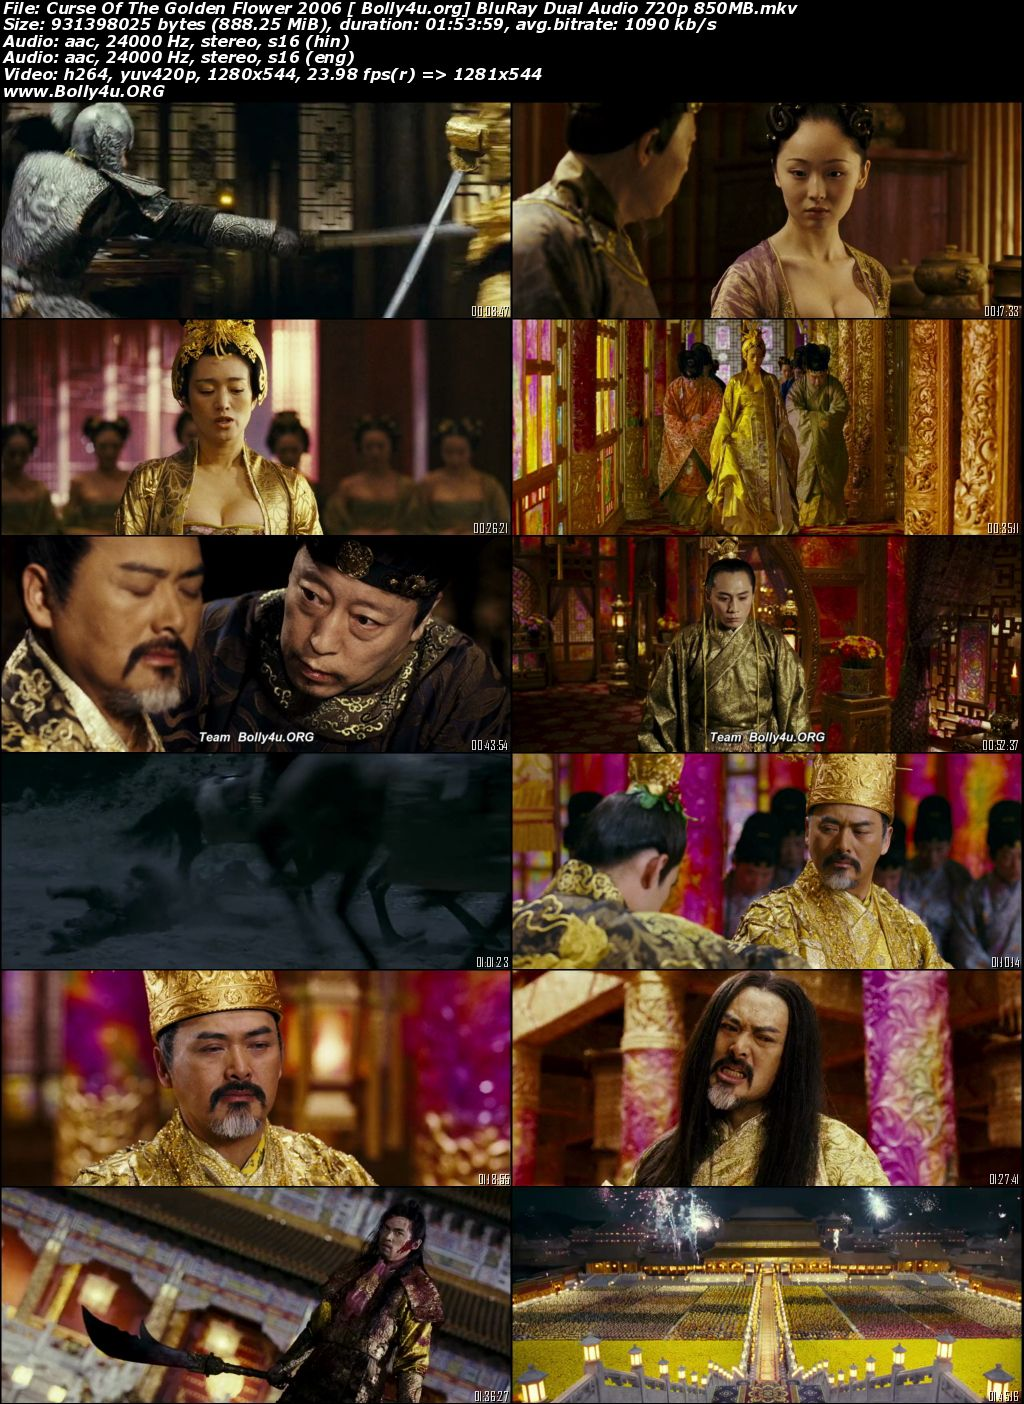 Curse of the Golden Flower 2006 BRRip 850MB Hindi Dual Audio 720p Download